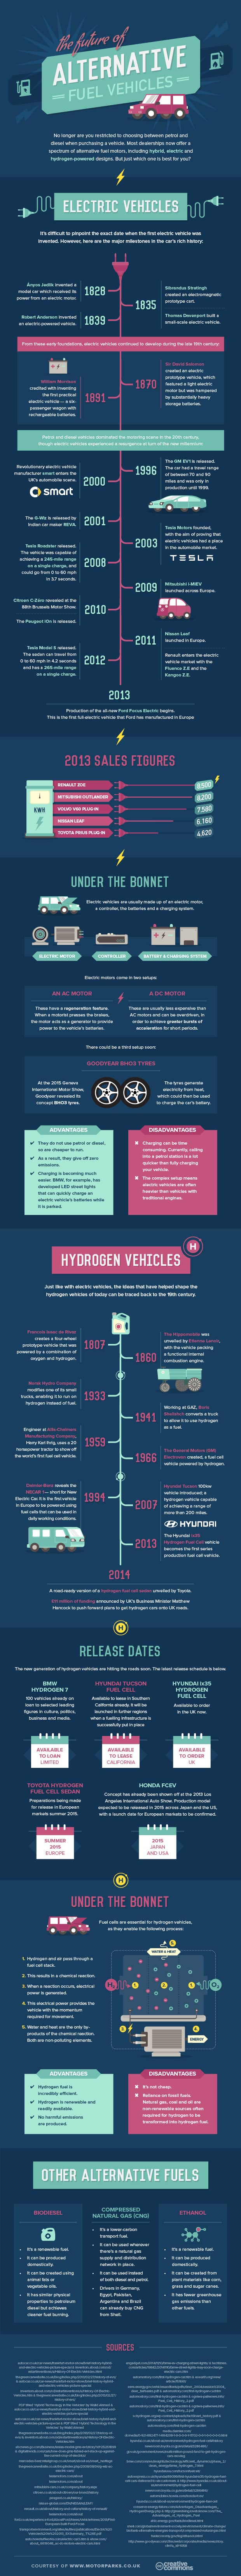 The future of Alternative fuels v2 - Want to learn more about alternative fuel? Check out this infographic!